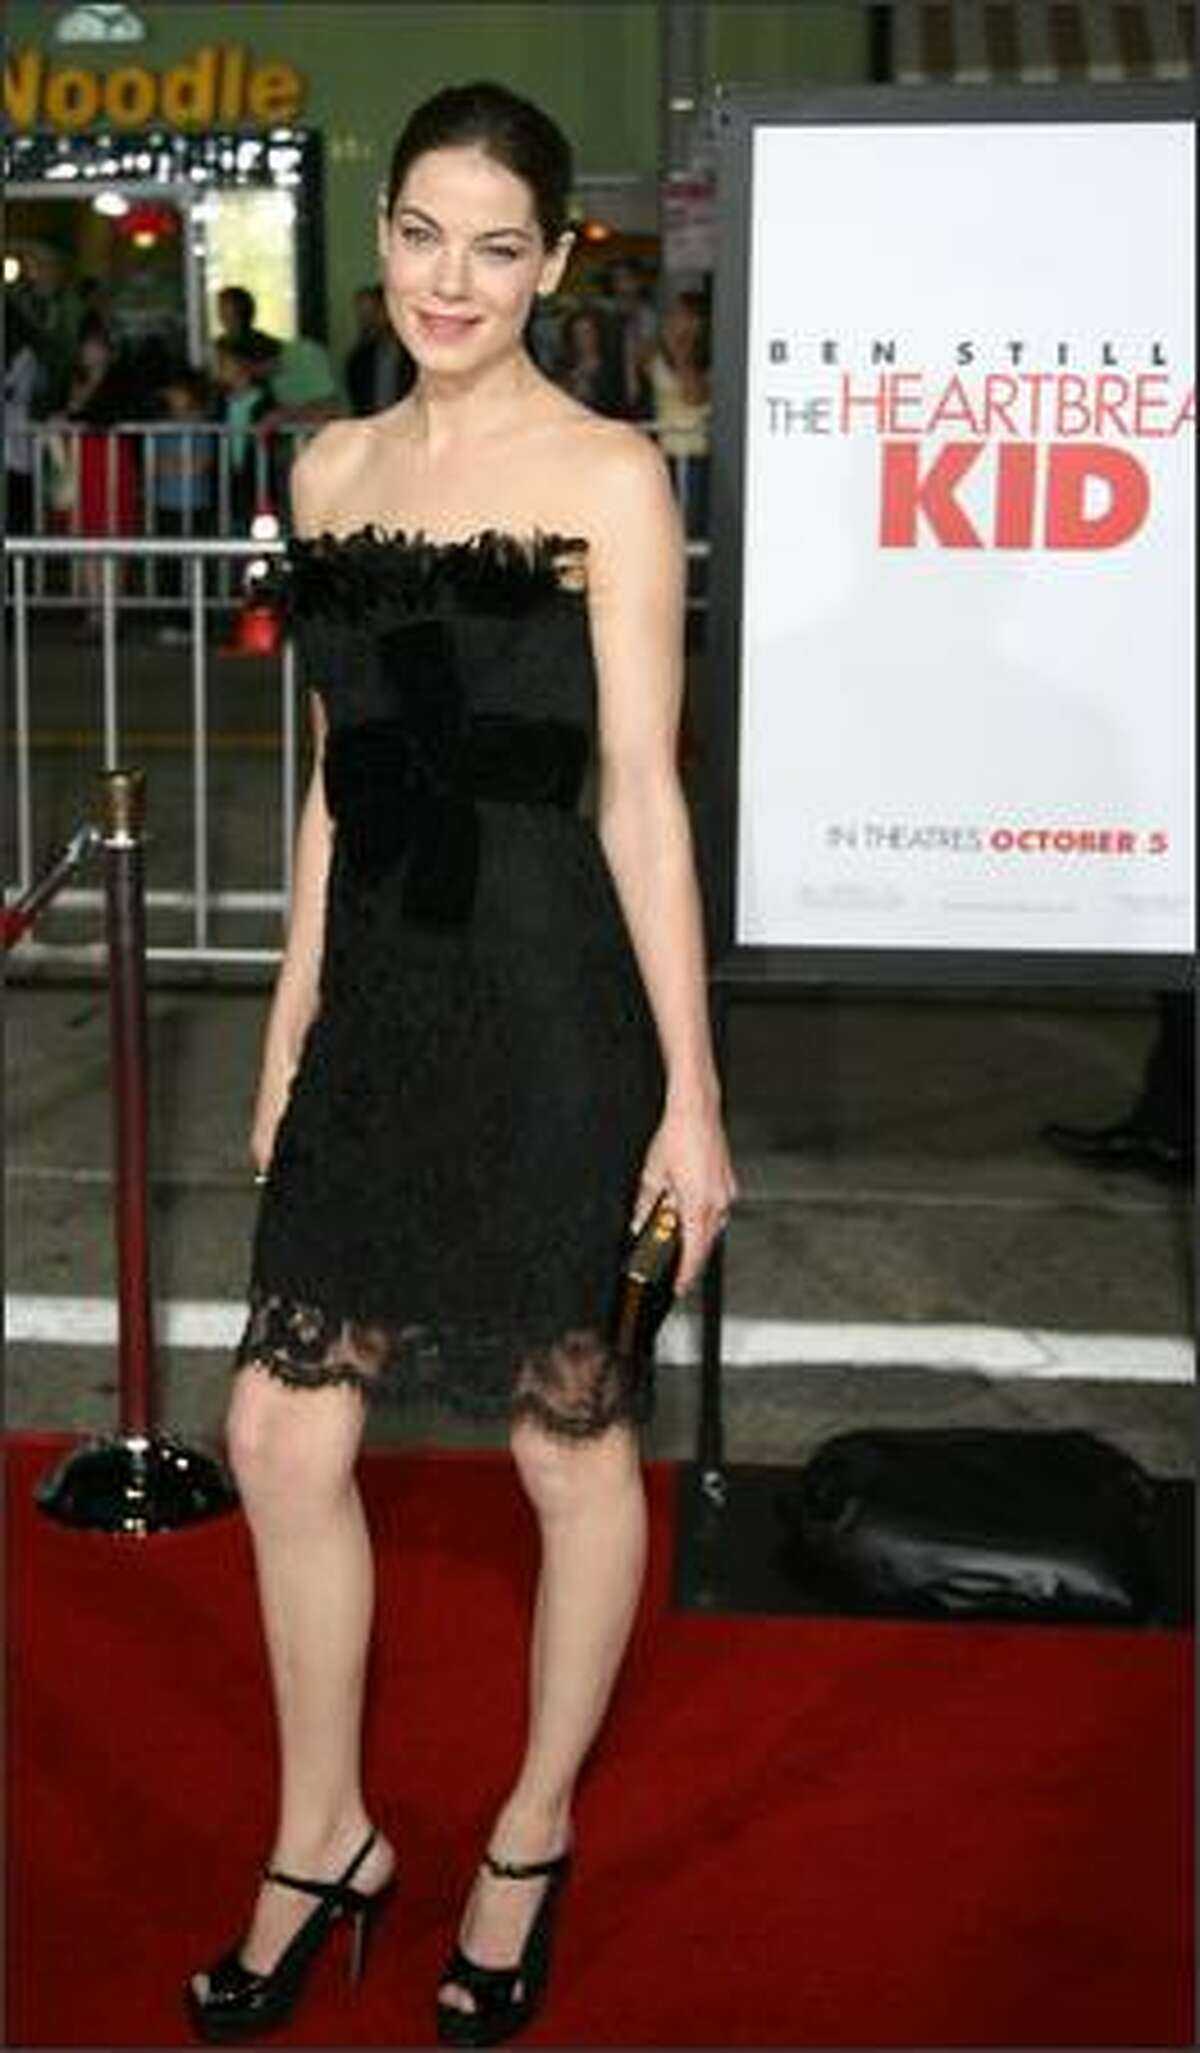 """Actress Michelle Monaghan arrives for the premiere of """"The Heartbreak Kid"""" 27 September 2007 in Los Angeles. The story centers on a man (Ben Stiller) who is convinced that he has finally met the right girl and marries too quickly. While on his honeymoon and in the process of discovering that his new bride is a nightmare, he meets the girl of his dreams."""